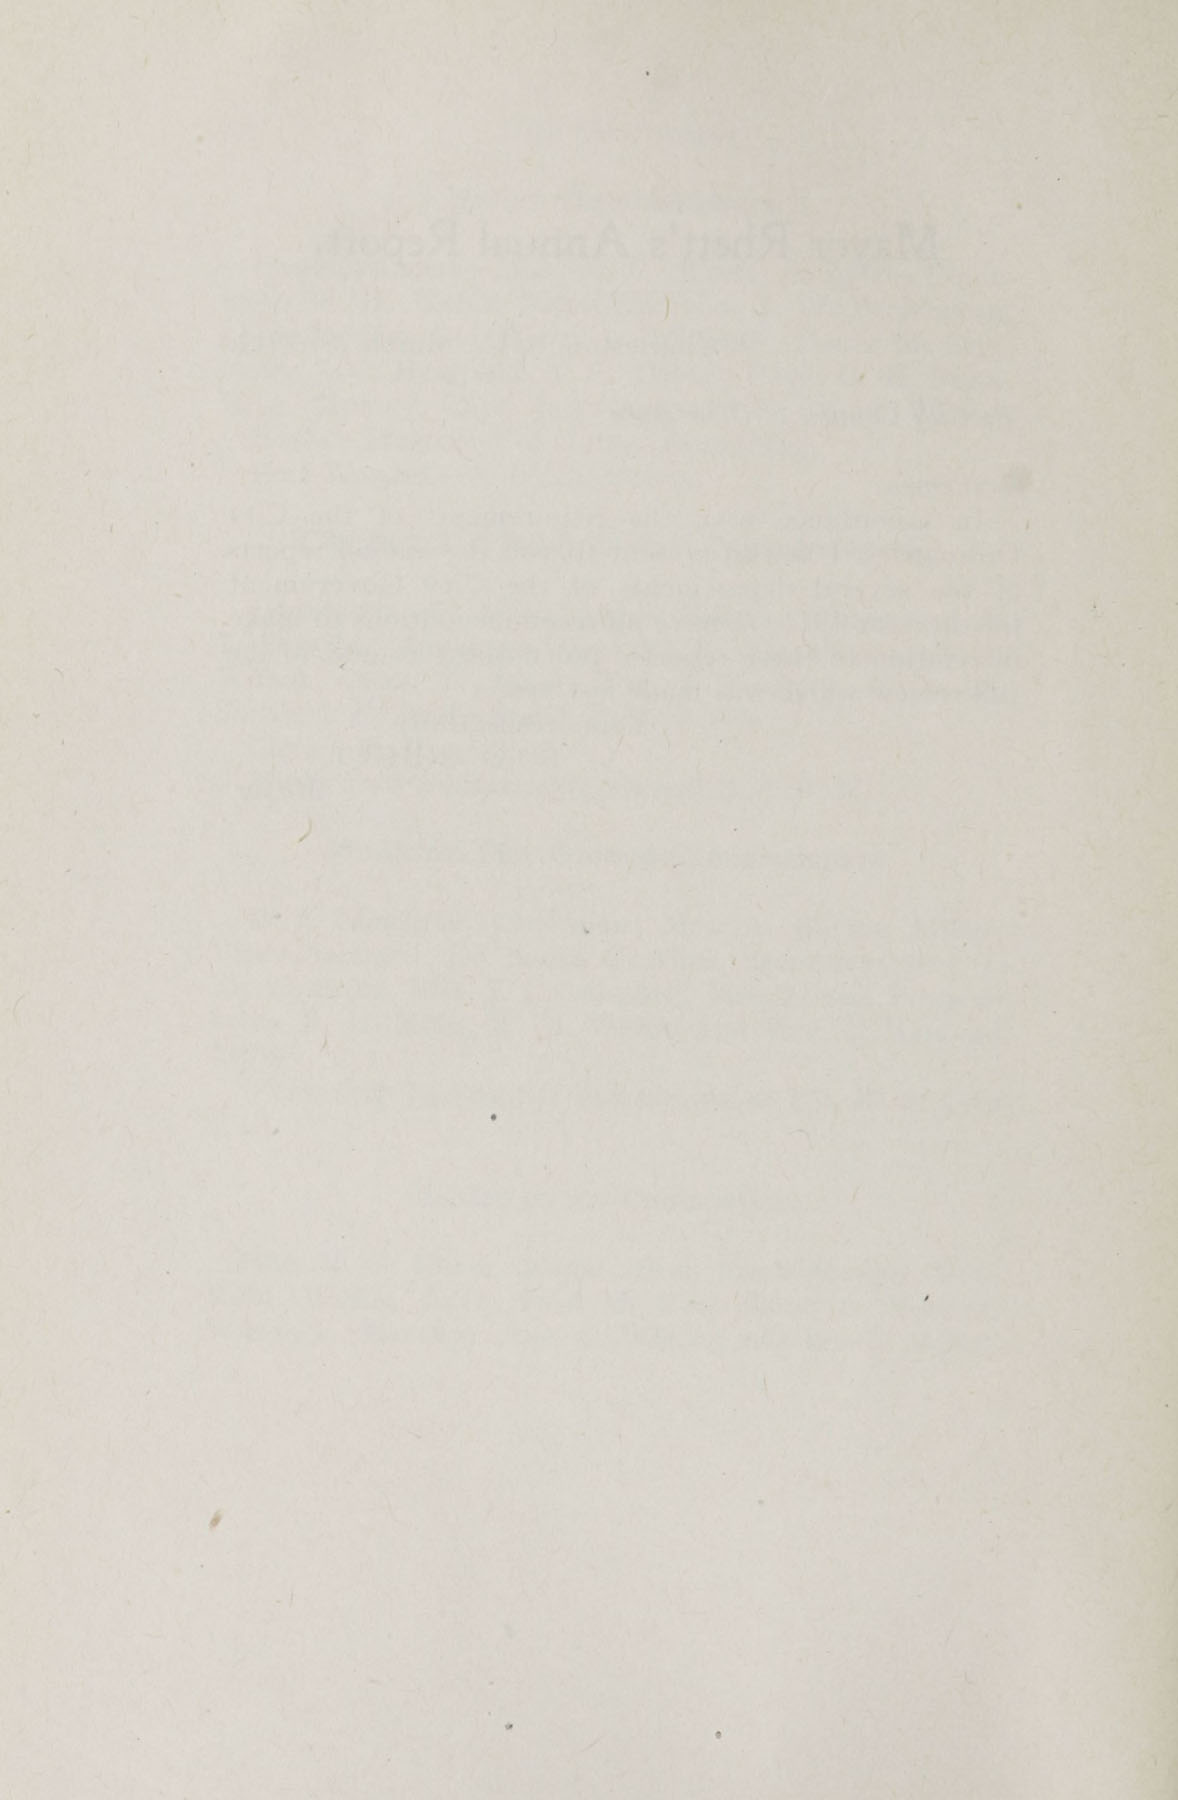 Charleston Yearbook, 1911, blank page